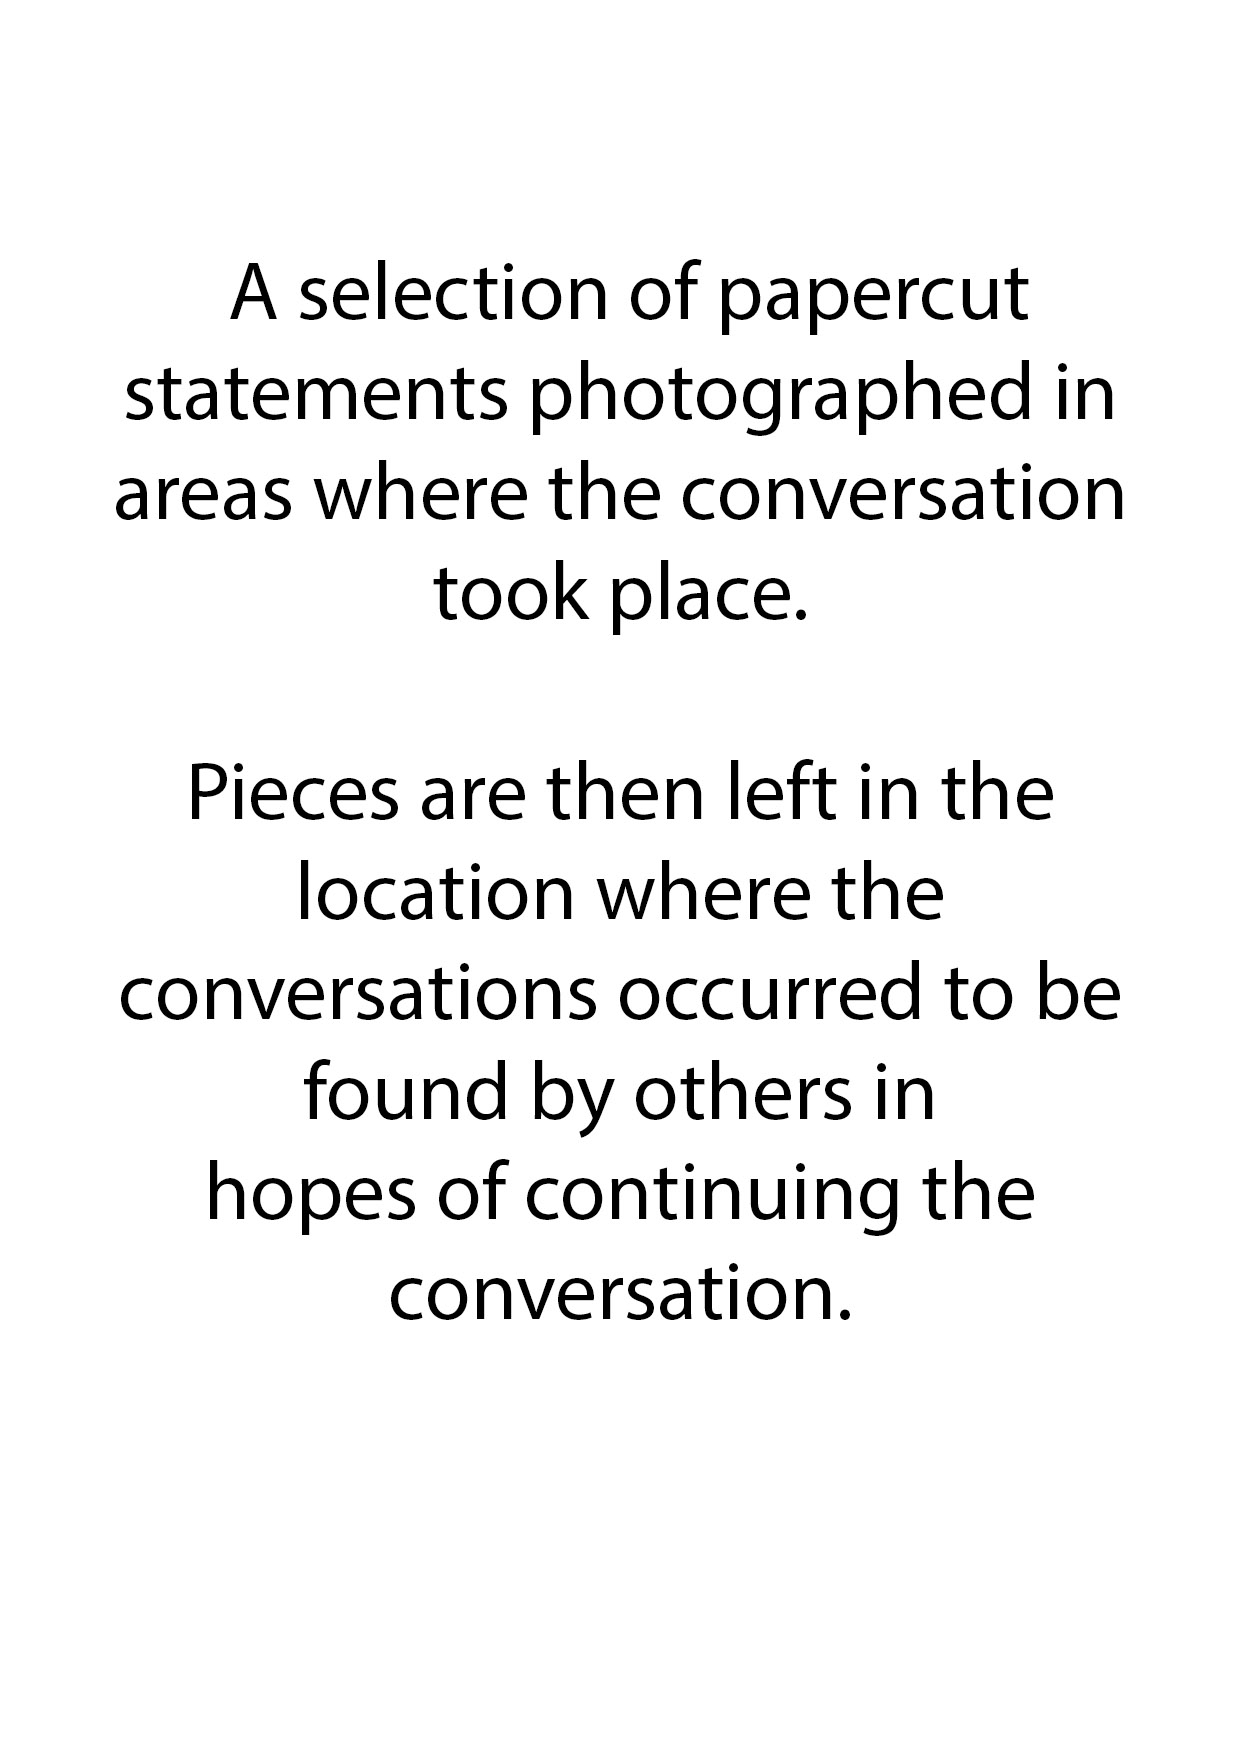 papercutstatements description.jpg